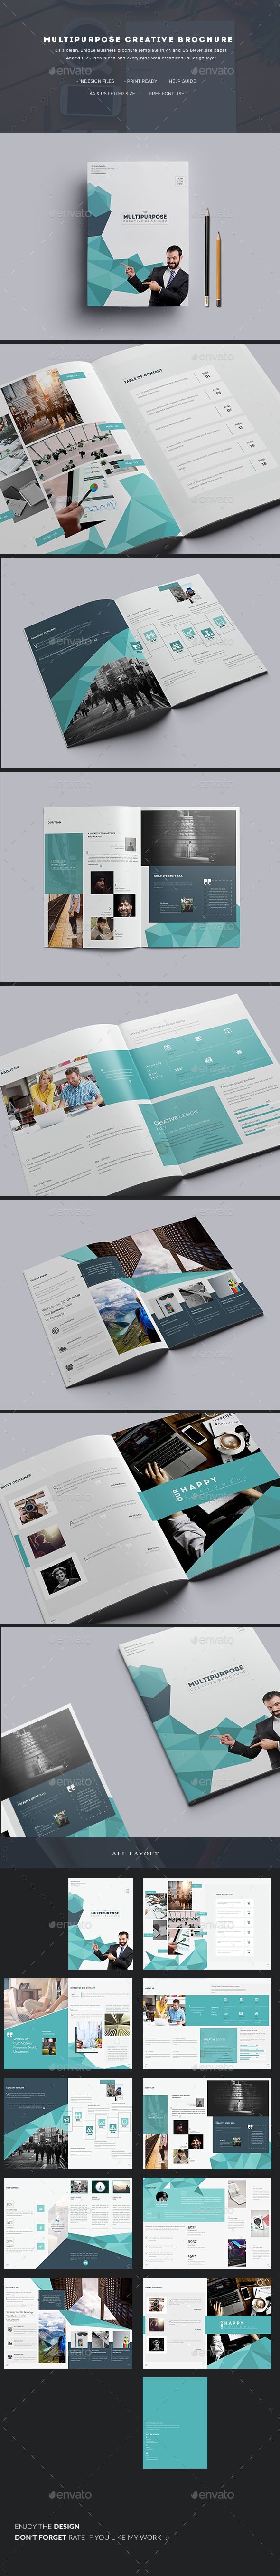 Multipurpose Creative Brochure Template InDesign INDD - 20 Pages, A4 & US Letter size